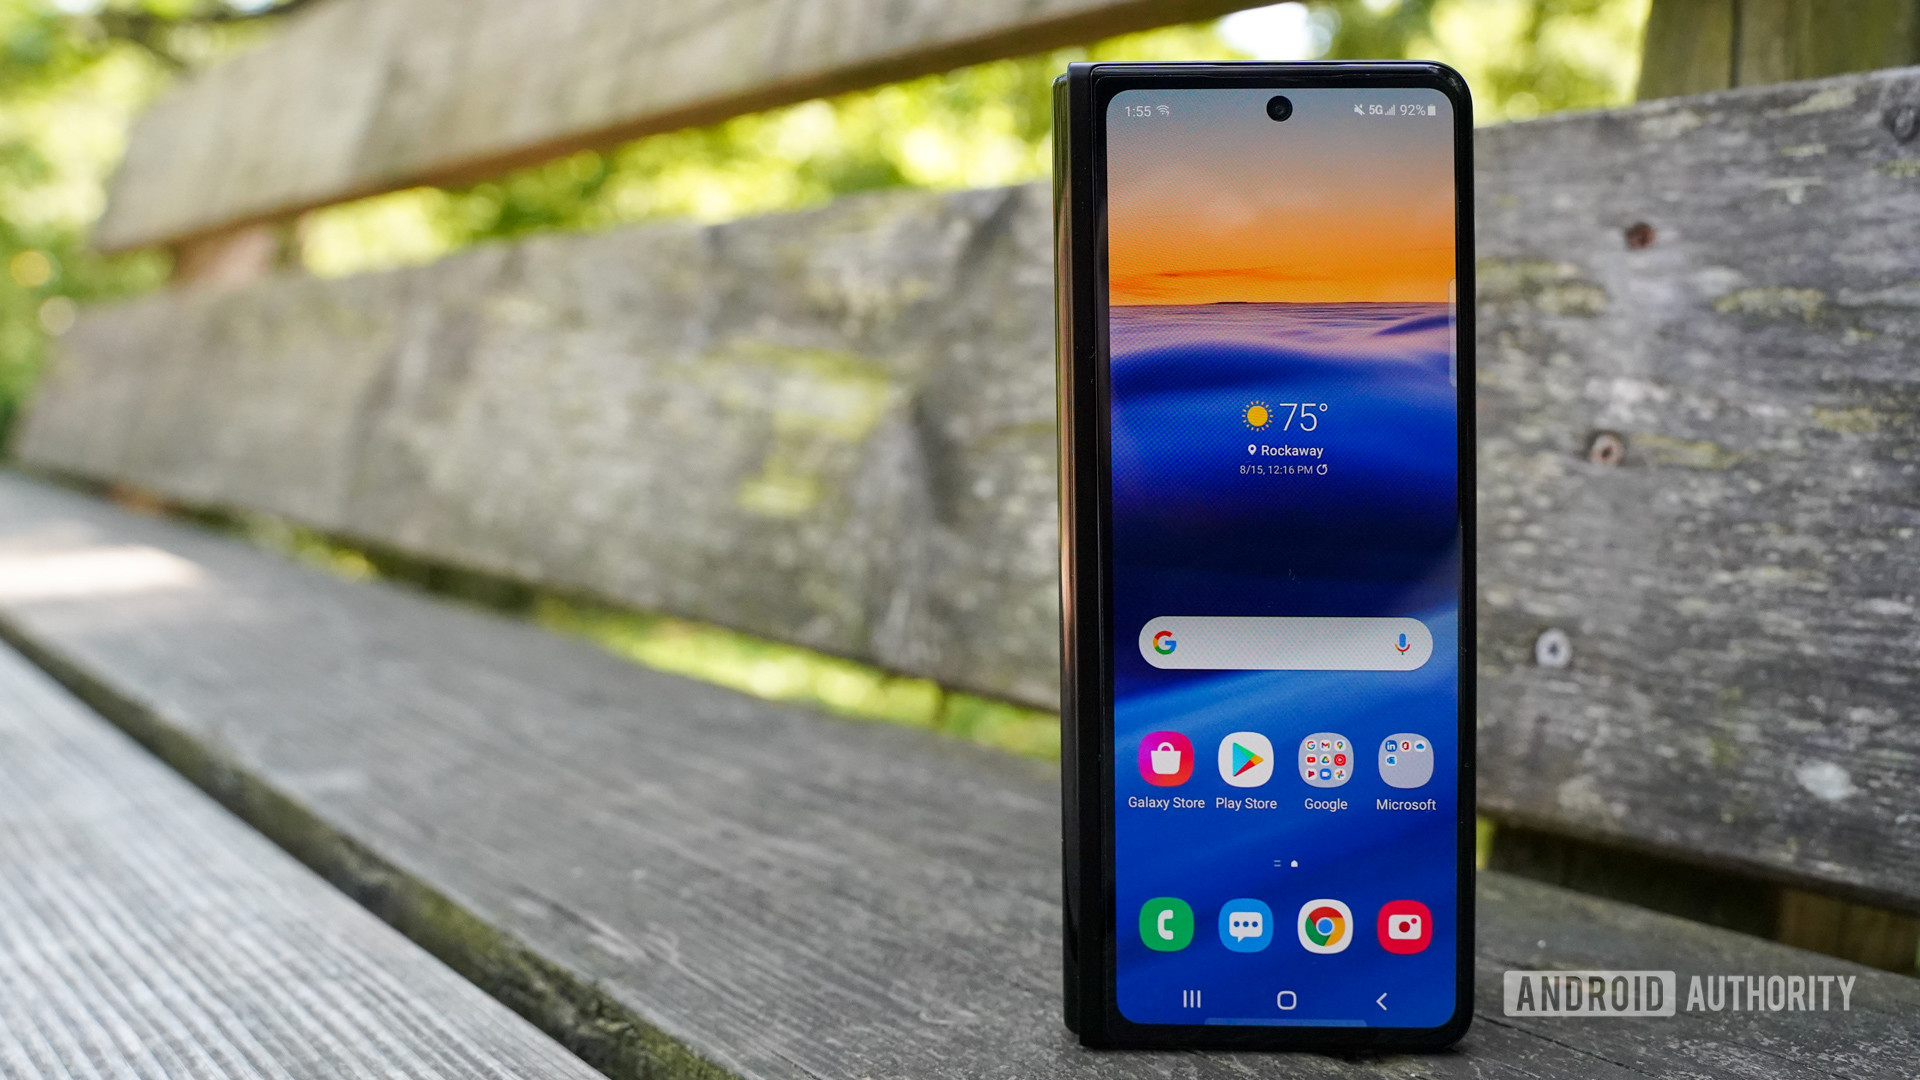 Samsung Galaxy Z Fold 3 closed front screen on a bench.